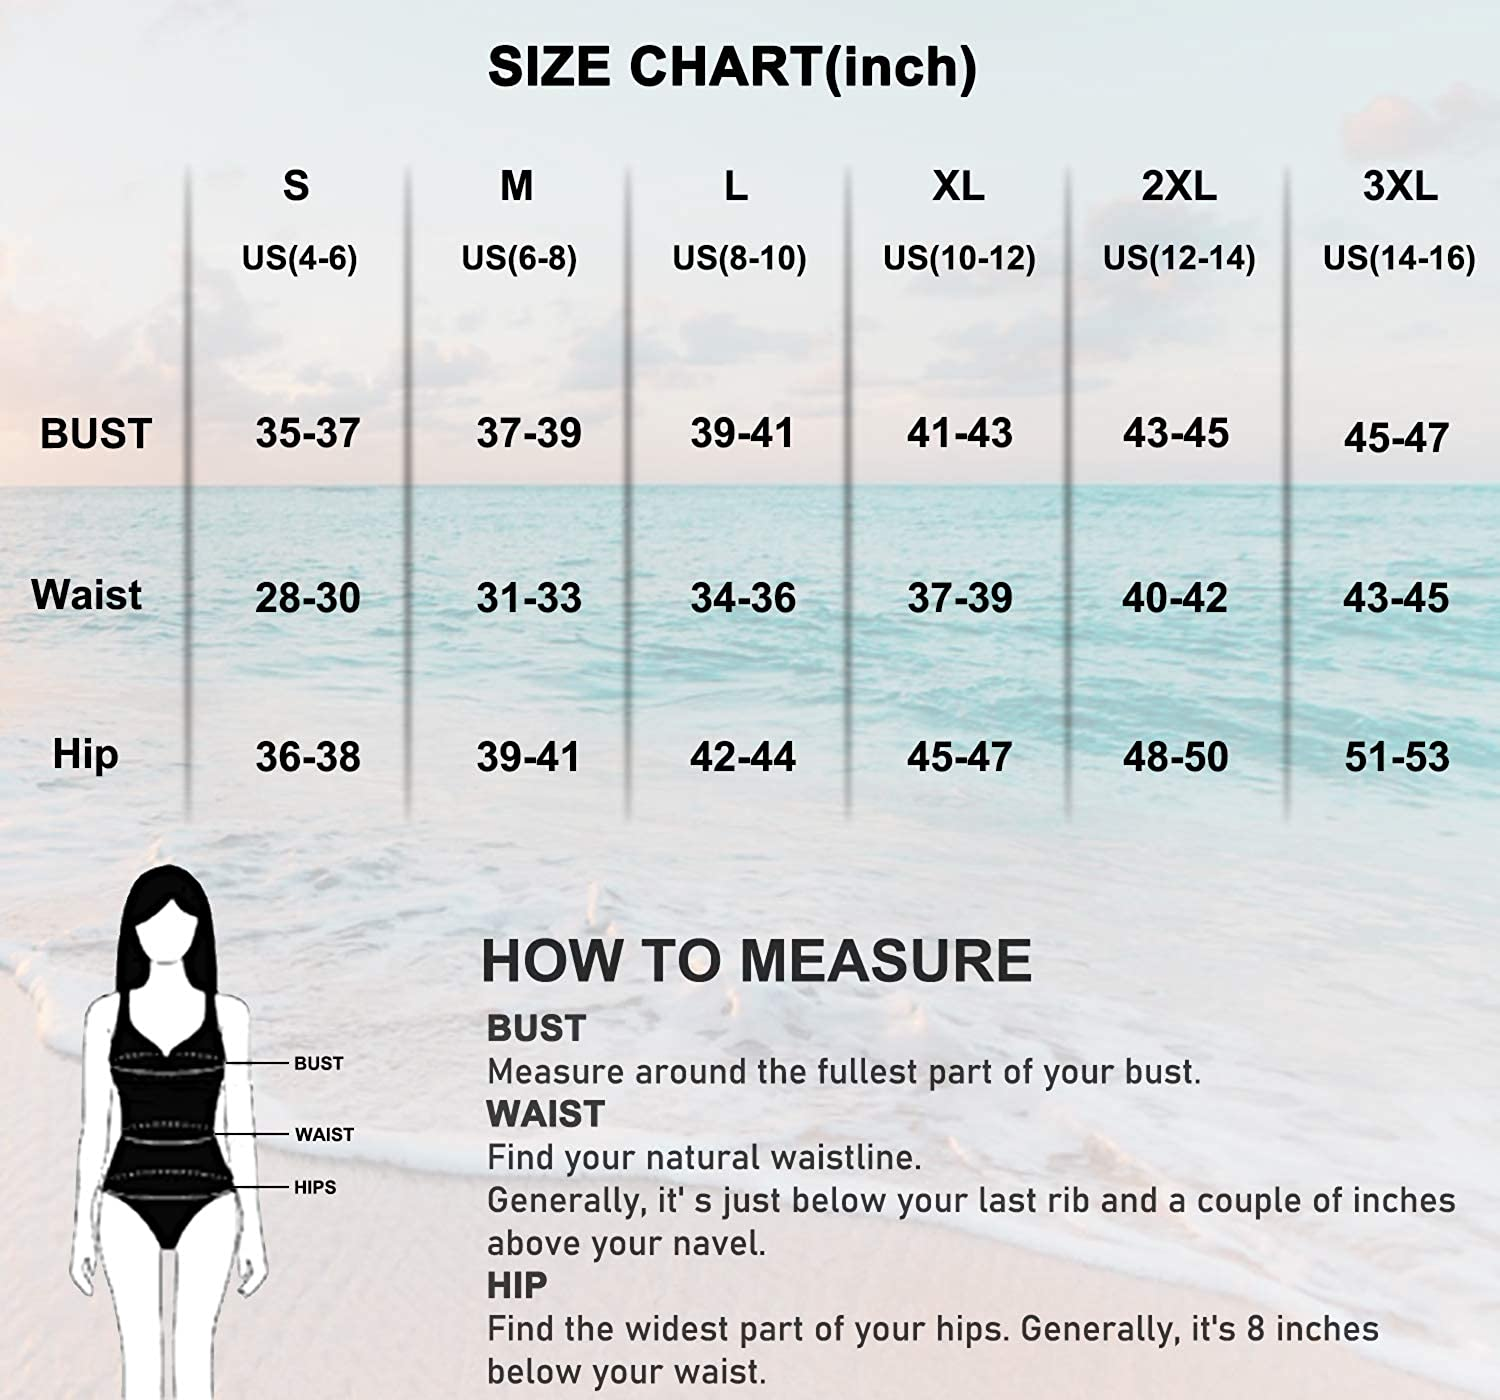 Double Couple One Piece Swimsuits for Women Swimwear Swimdress Plus Size Bathing Suit Dress